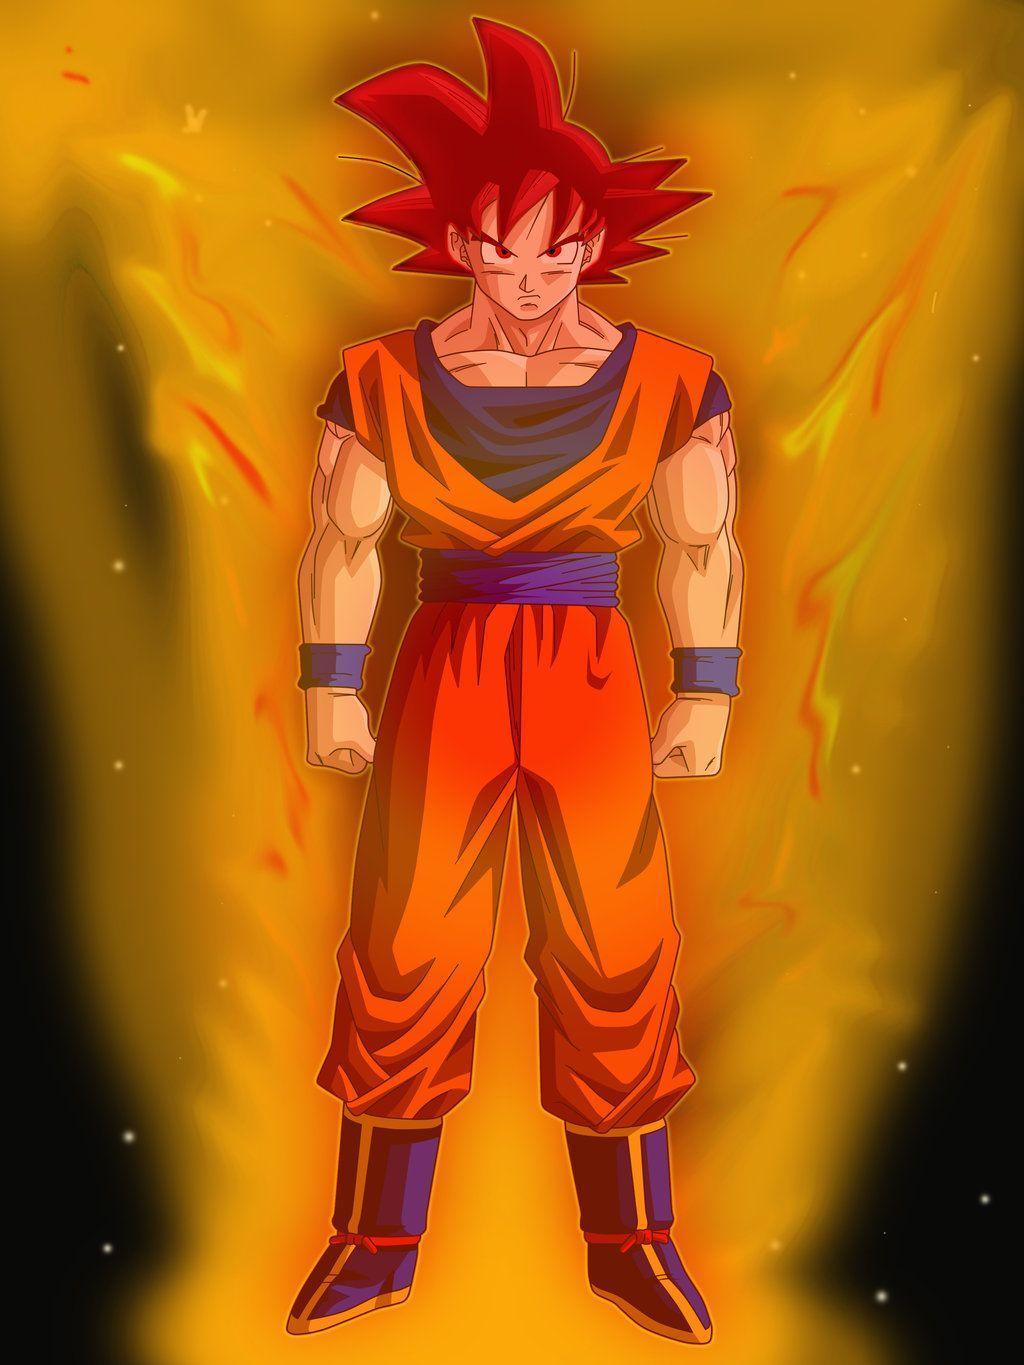 Goku Super Saiyan God by Sevolfo on DeviantArt |Goku Super Sayian God